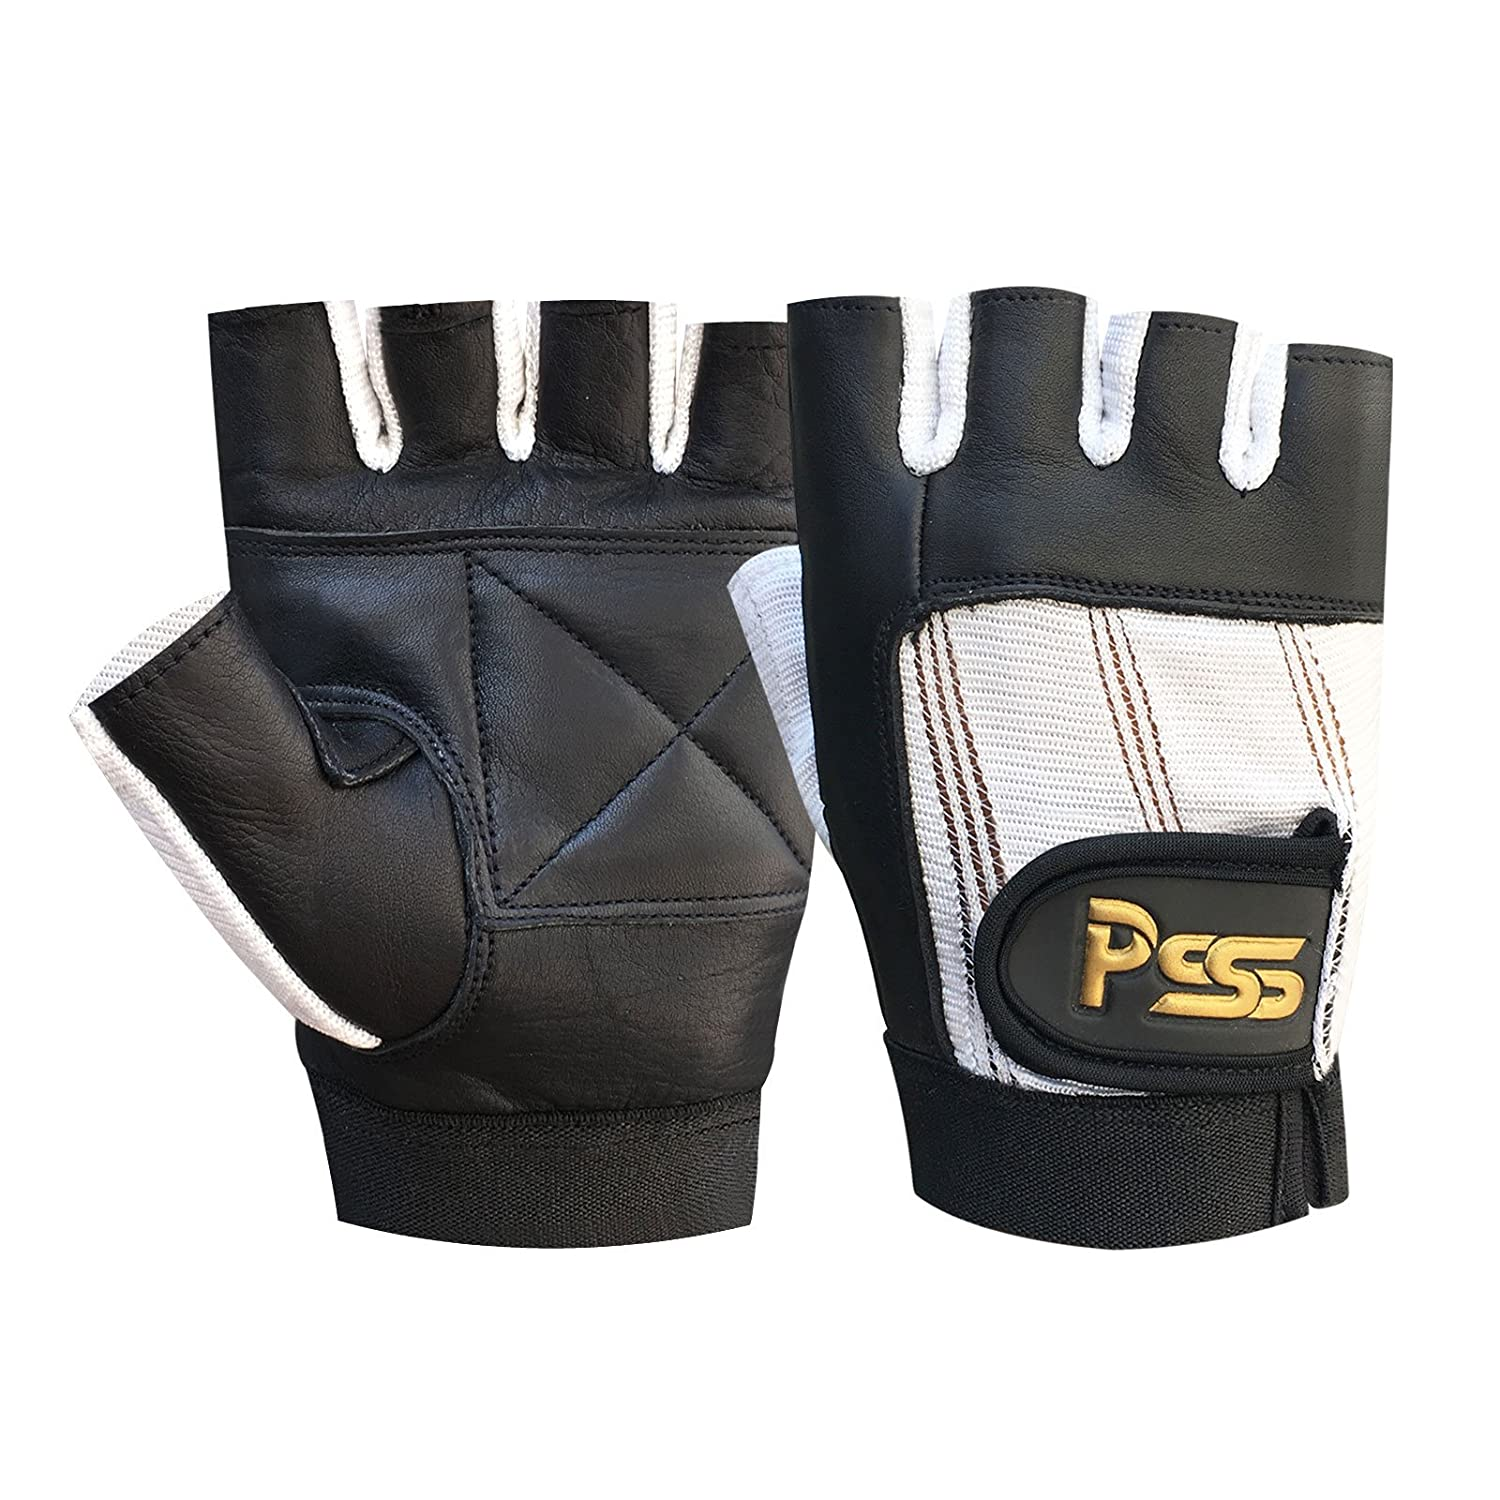 GYM WORK OUT CYCLING LEATHER BODY BUILDING TRAINING PADDED GLOVES